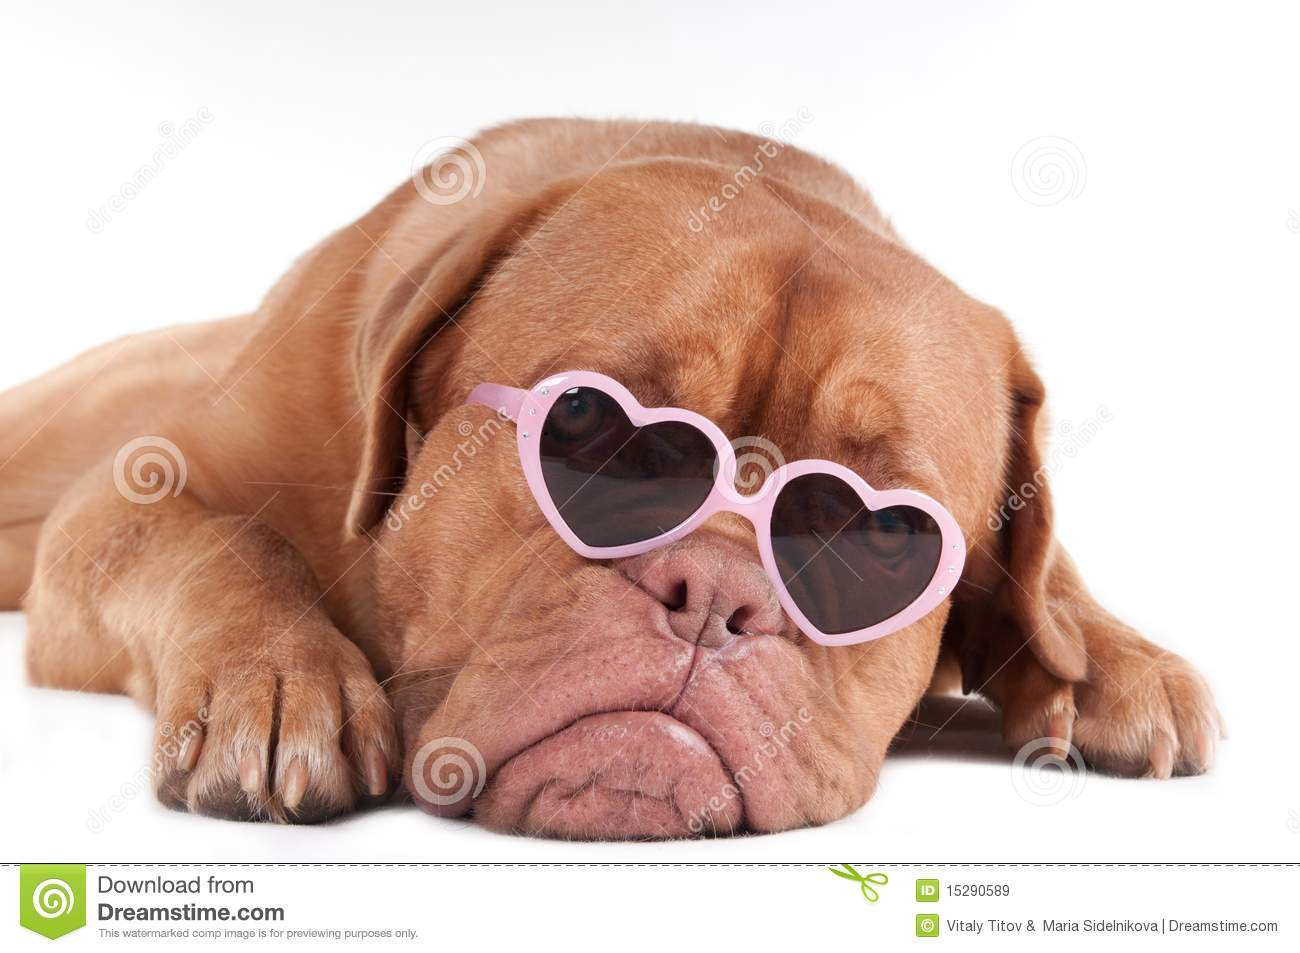 Dog With Sunglasses Royalty Free Stock Images - Image: 15290589